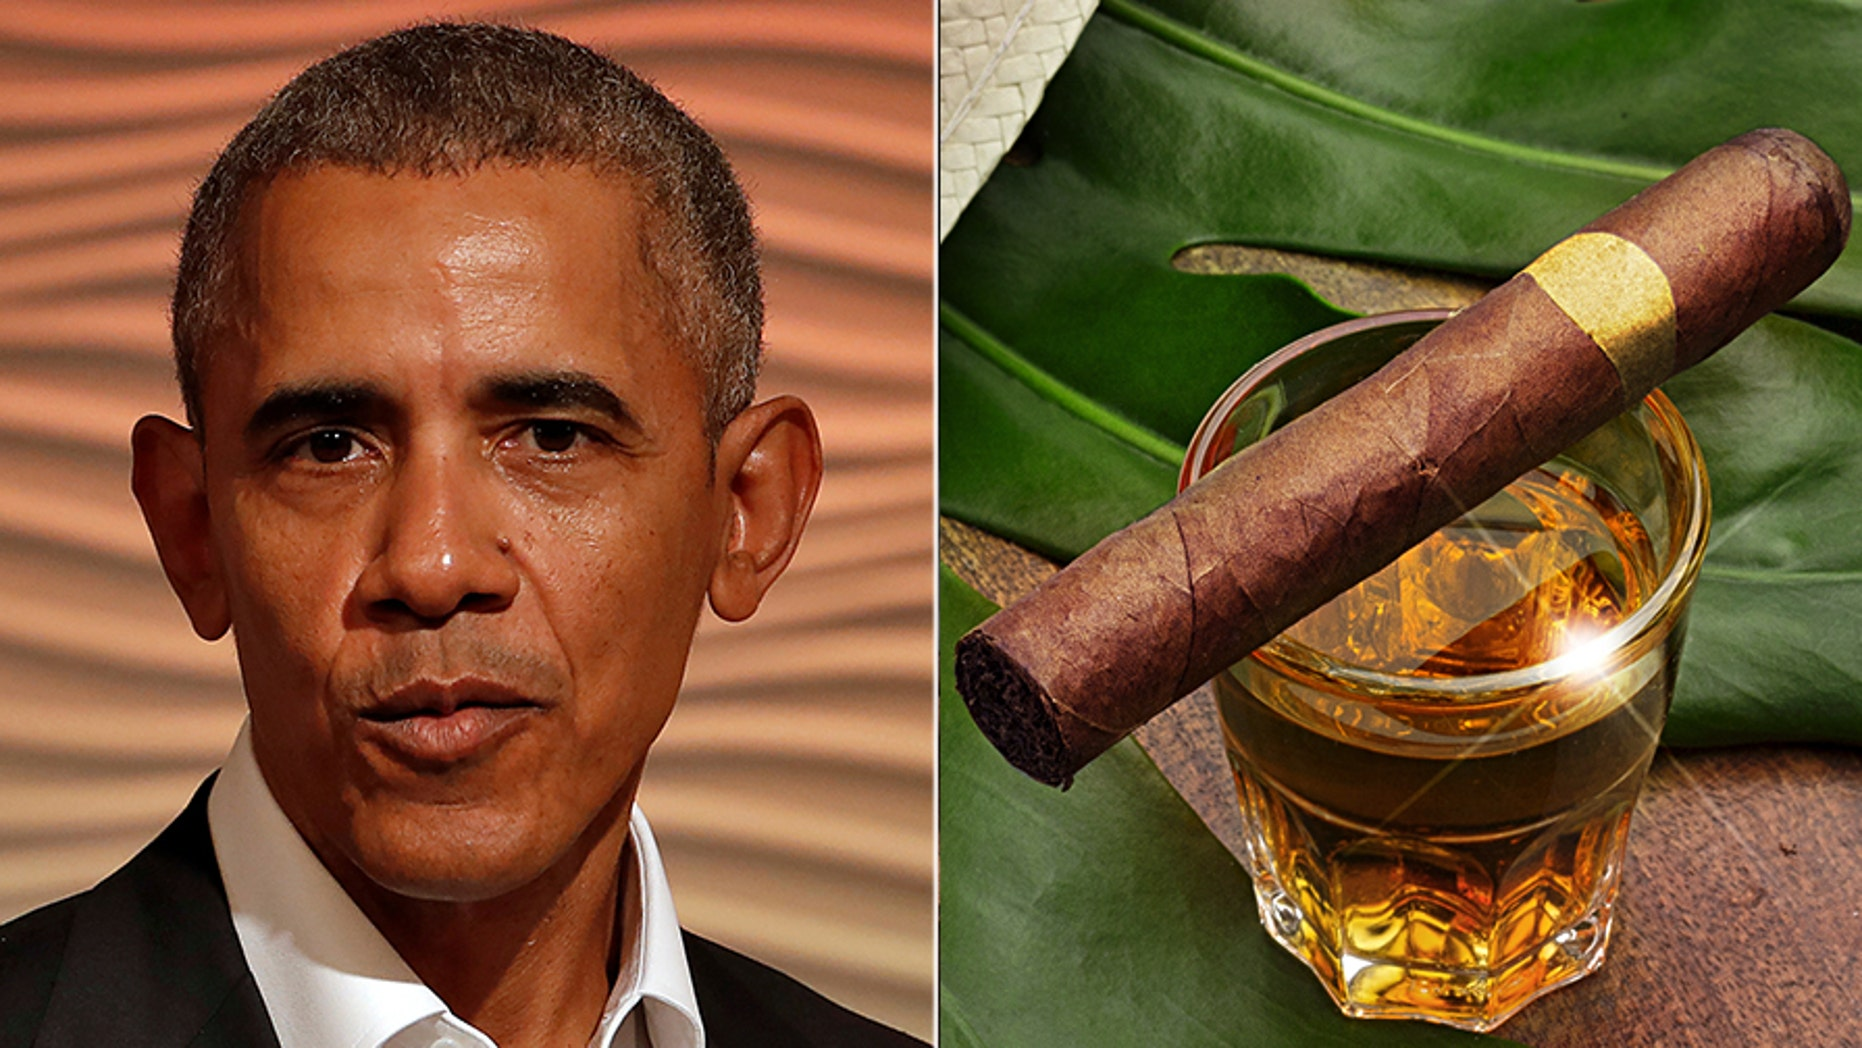 Federal documents revealed that President Barack Obama, his family and a top official received gifts from the Cuban government and other foreign friends during his final two years in office.